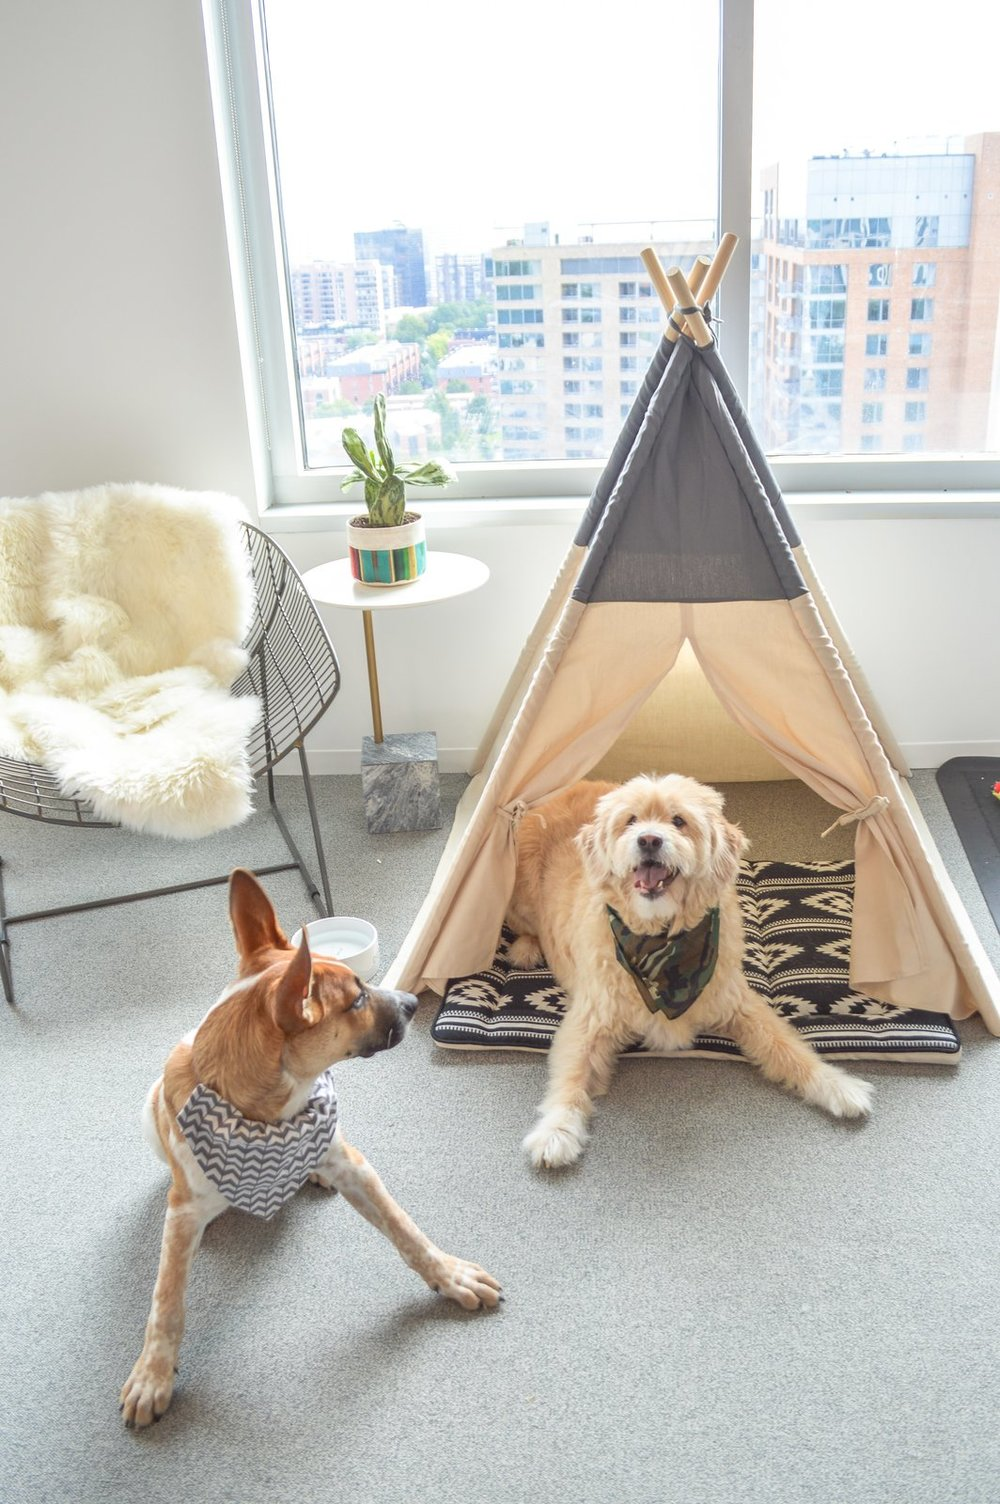 dog-hutch-for-employees-dogs.jpg